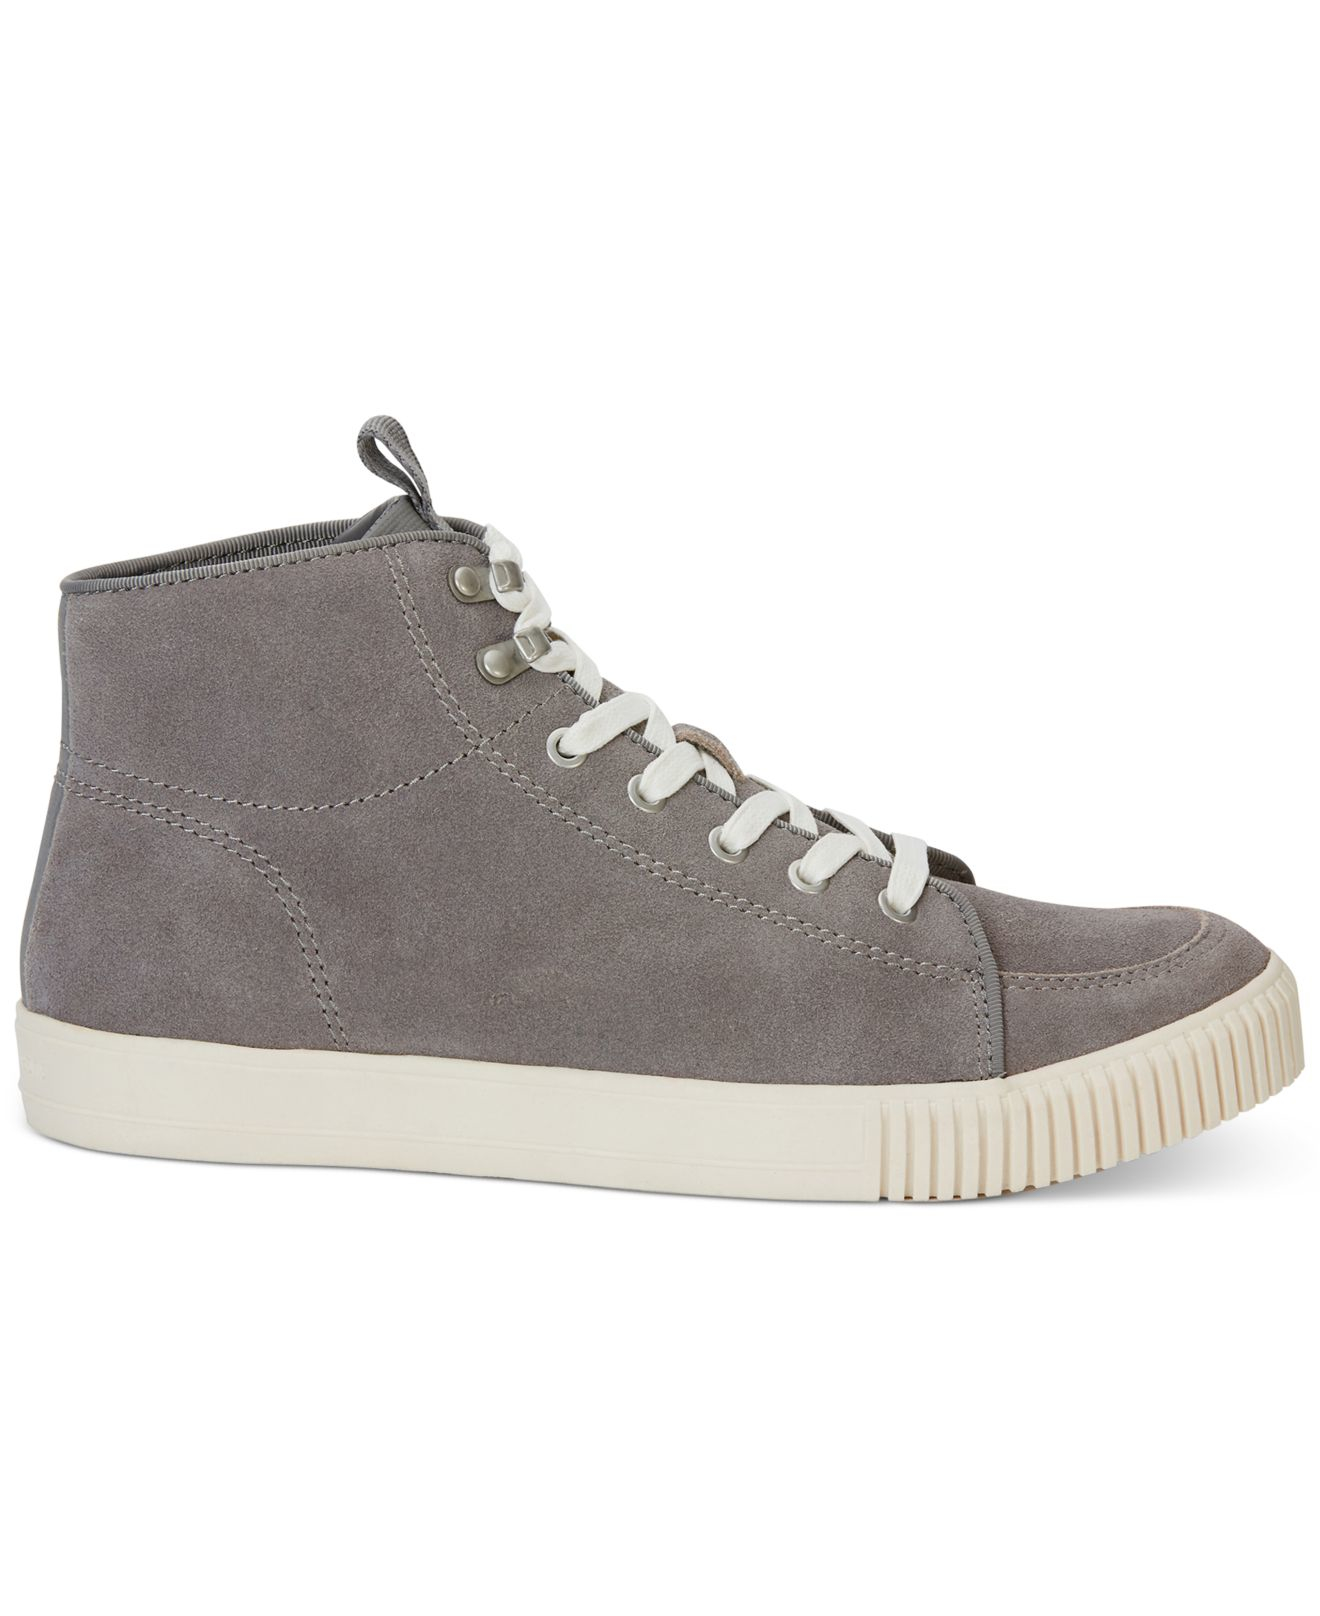 calvin klein jeans jenson high top suede sneakers in gray. Black Bedroom Furniture Sets. Home Design Ideas